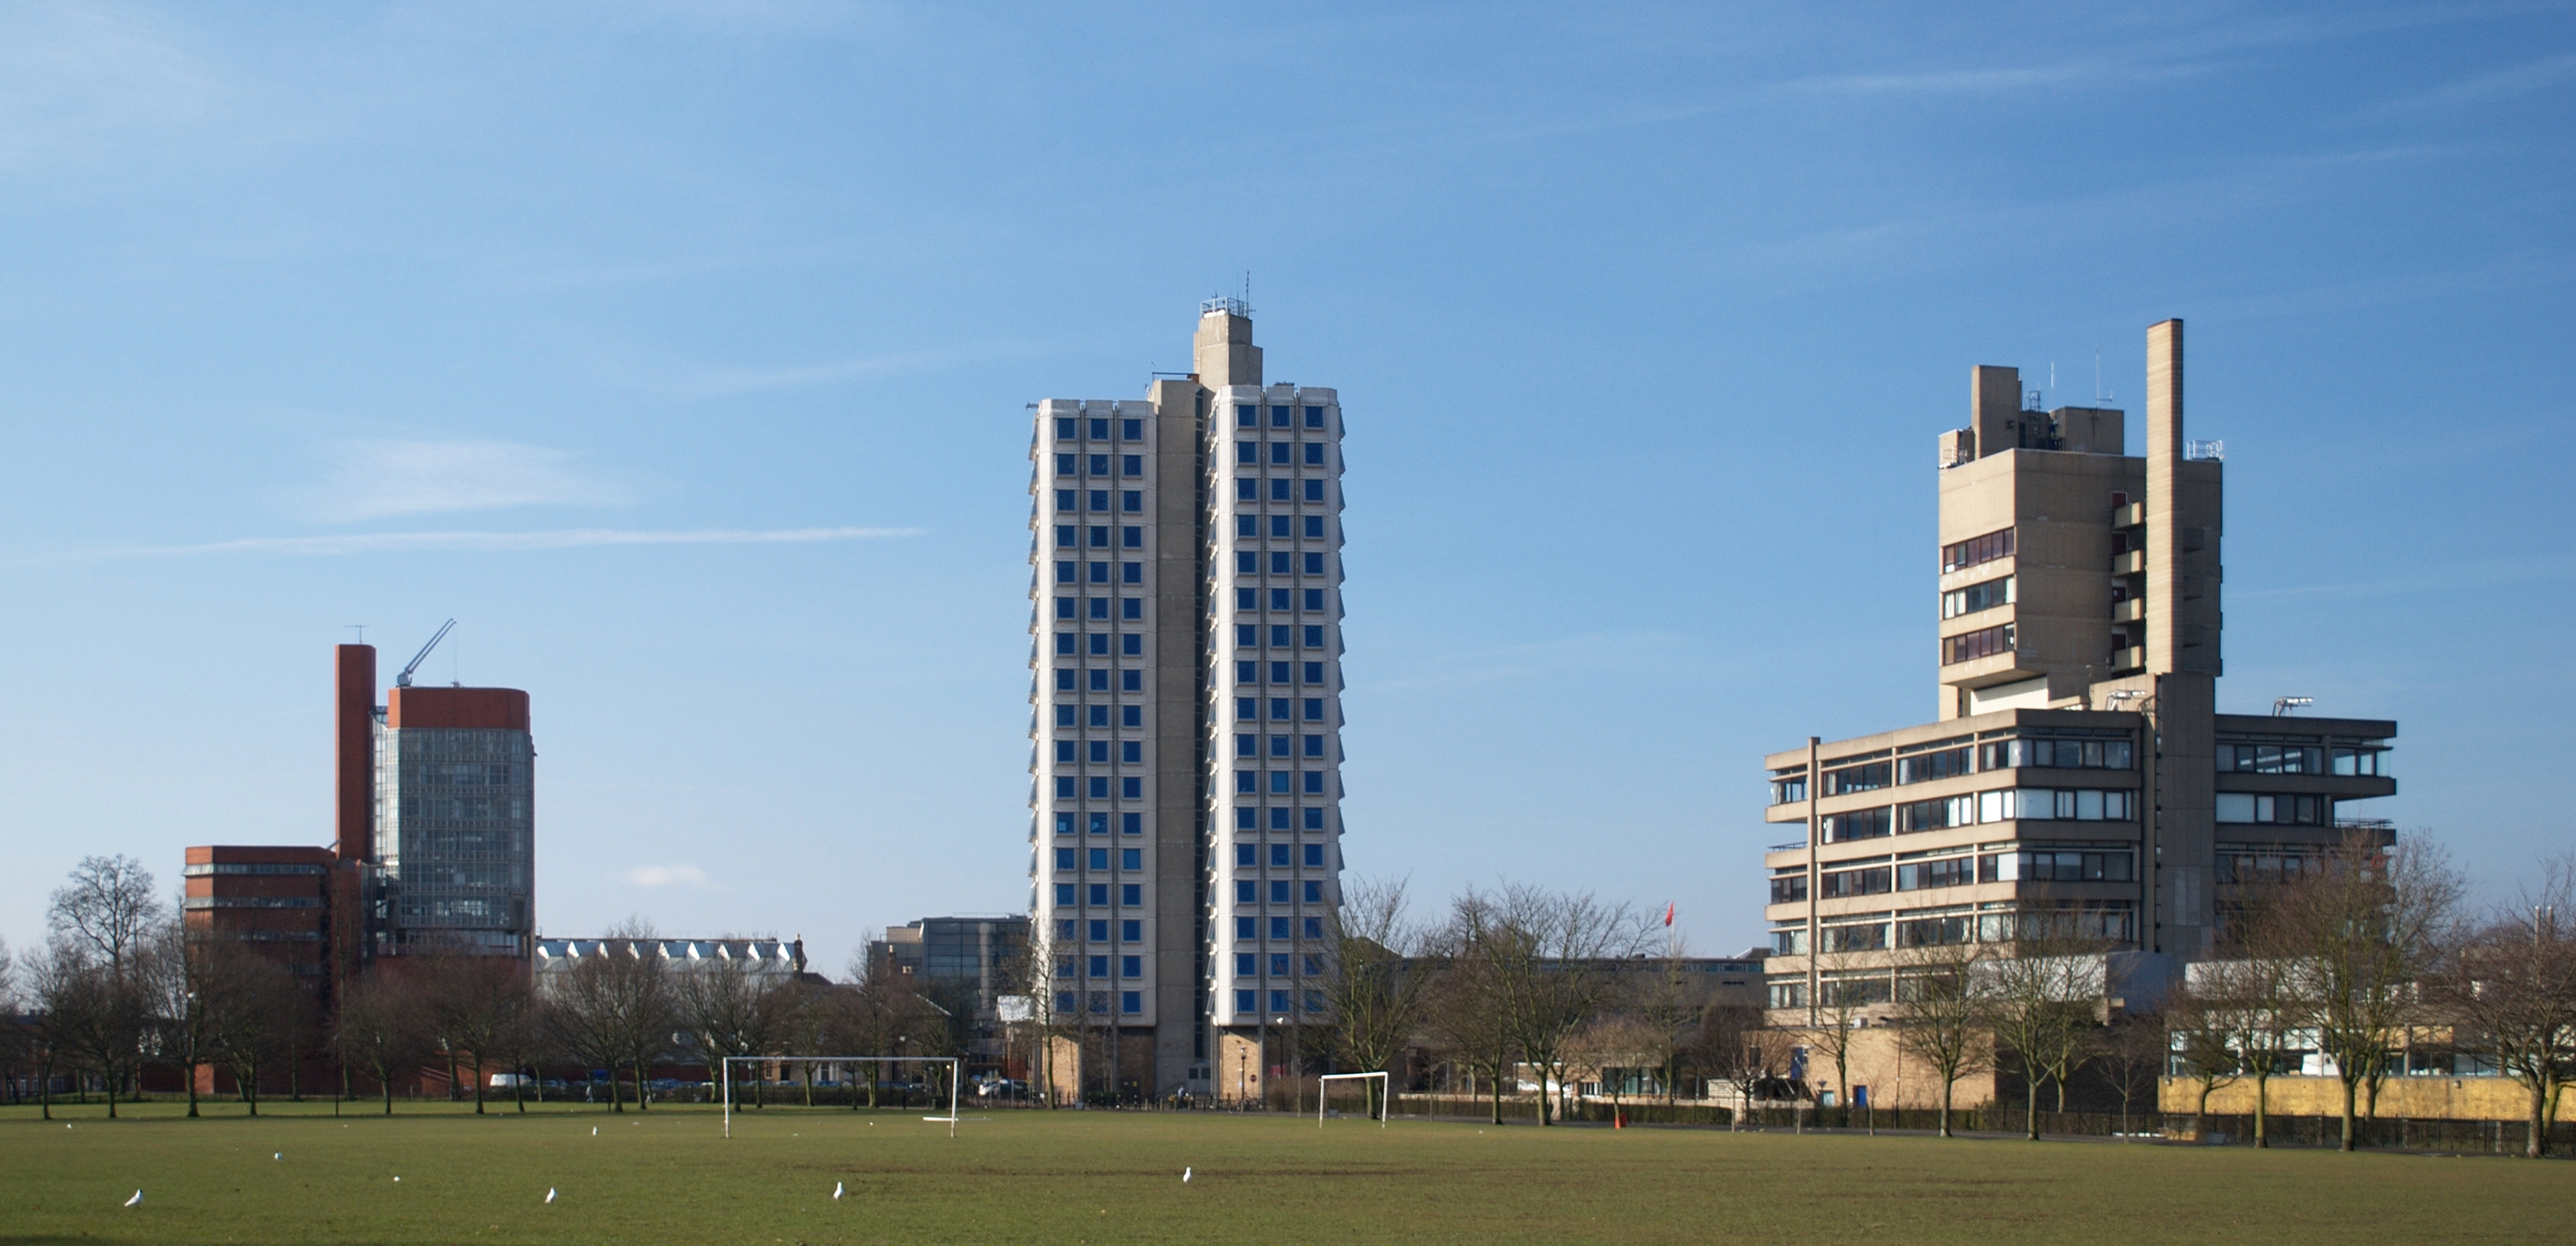 image of University of Leicester